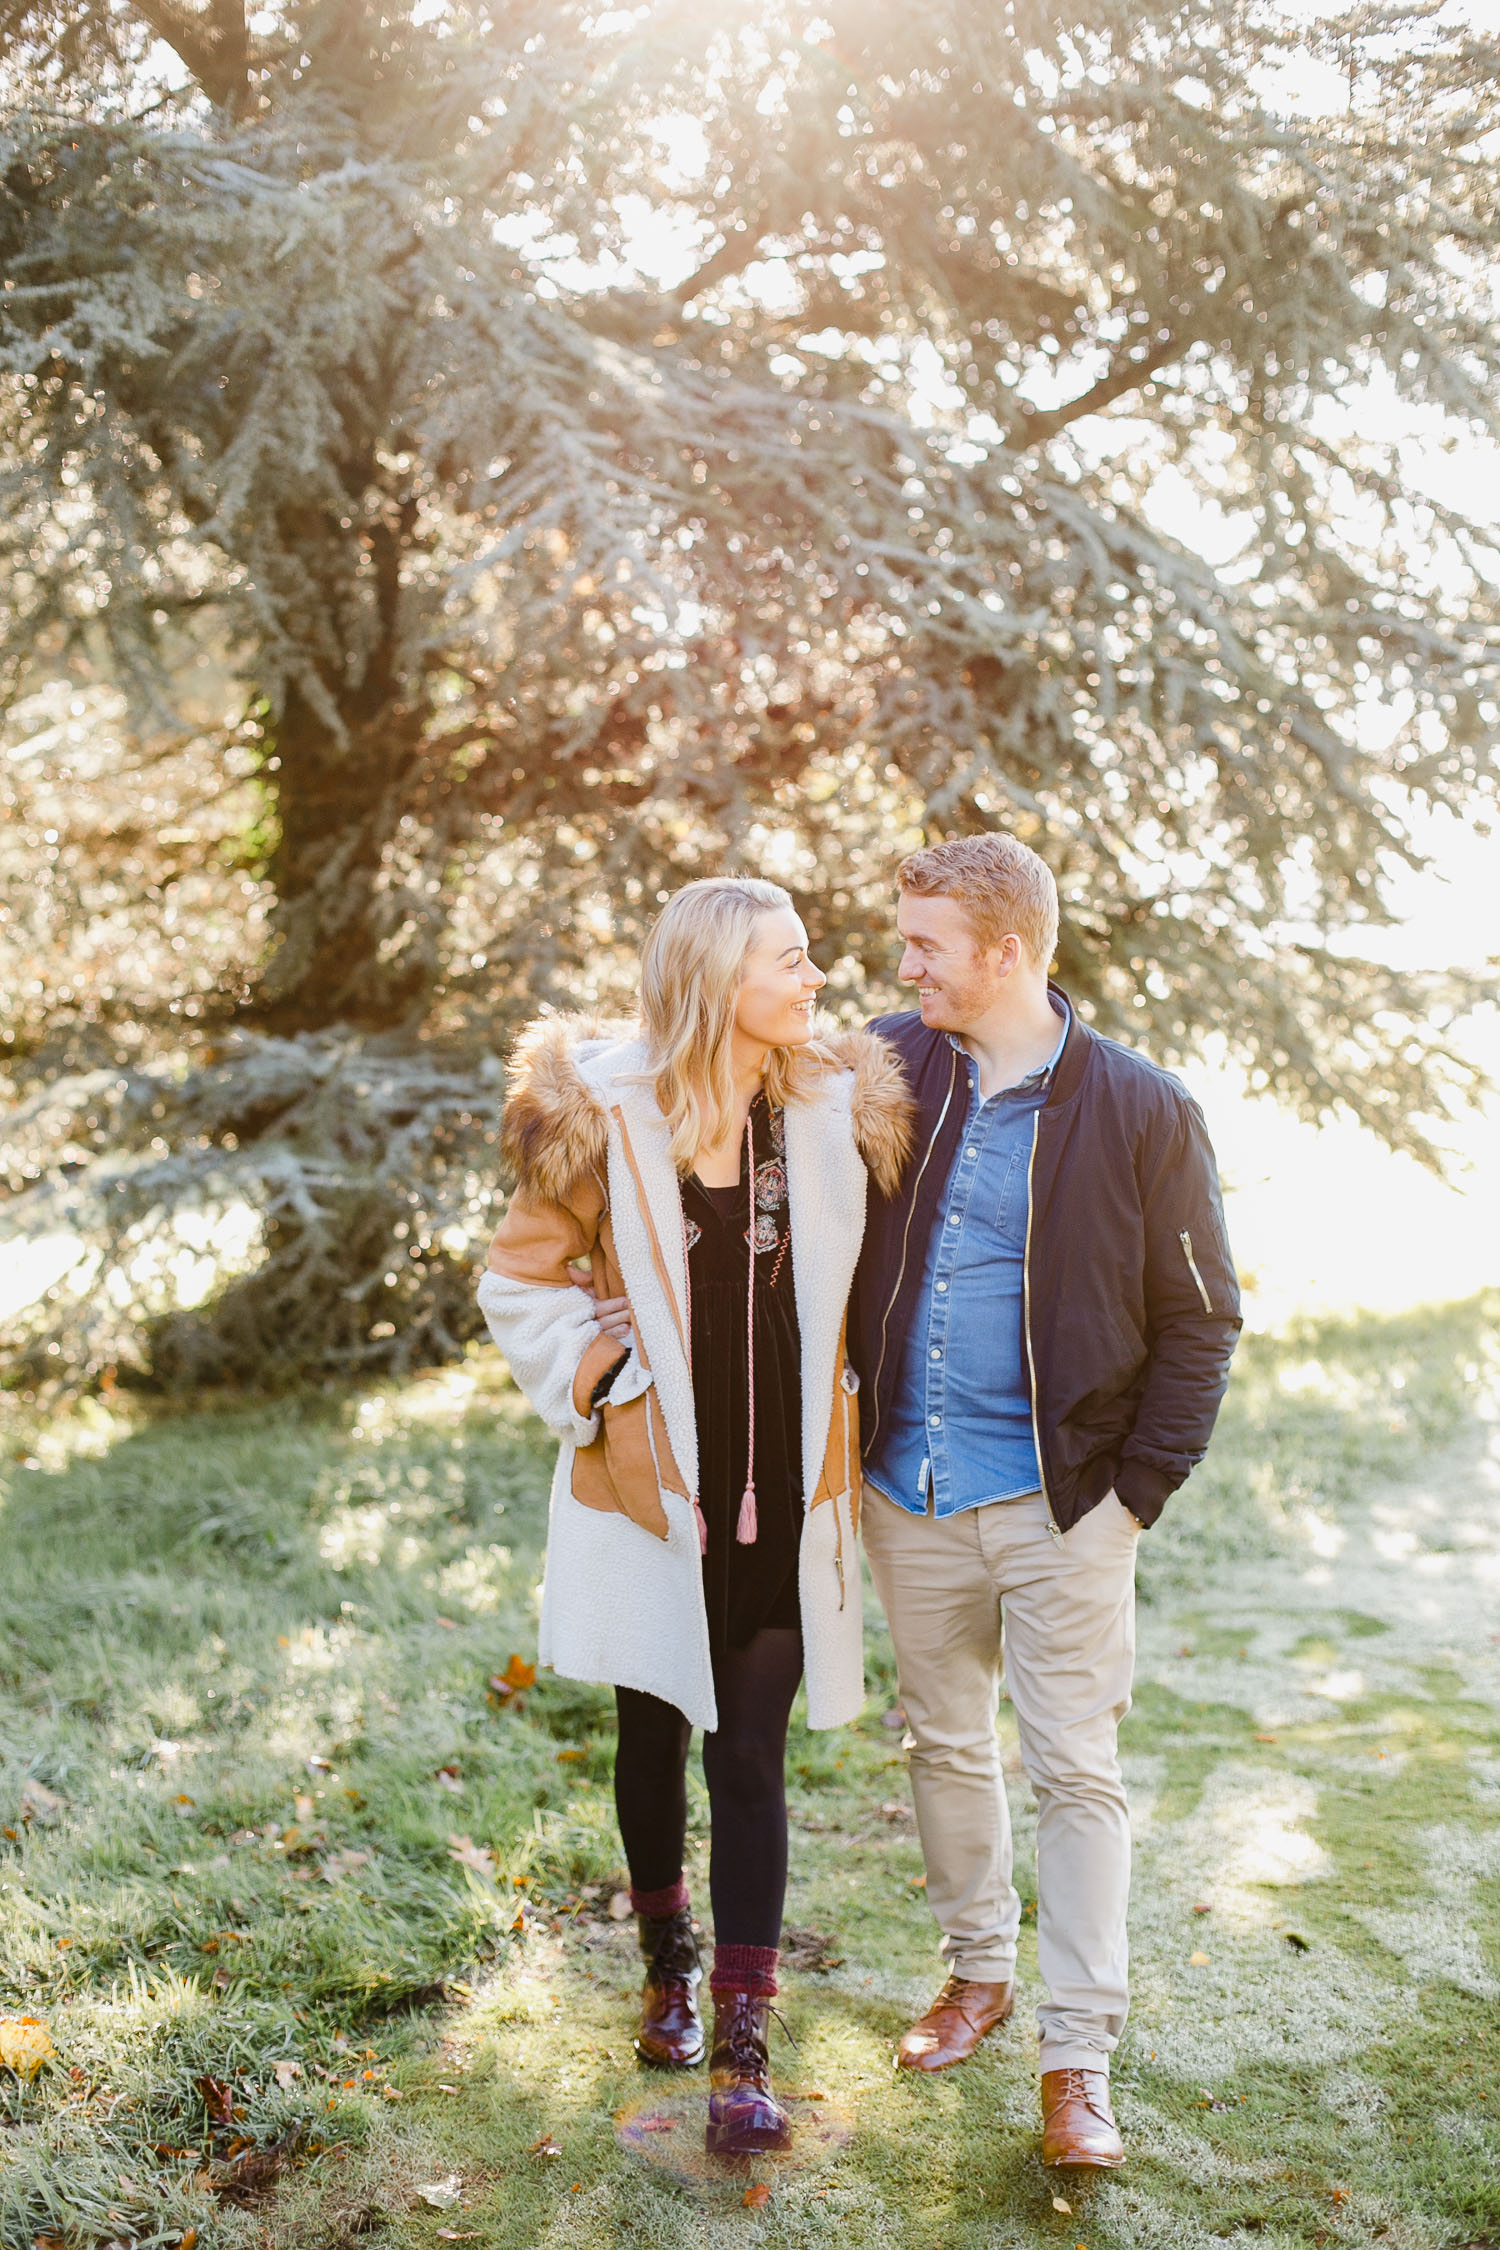 Fall Engagement Photoshoot In Ireland